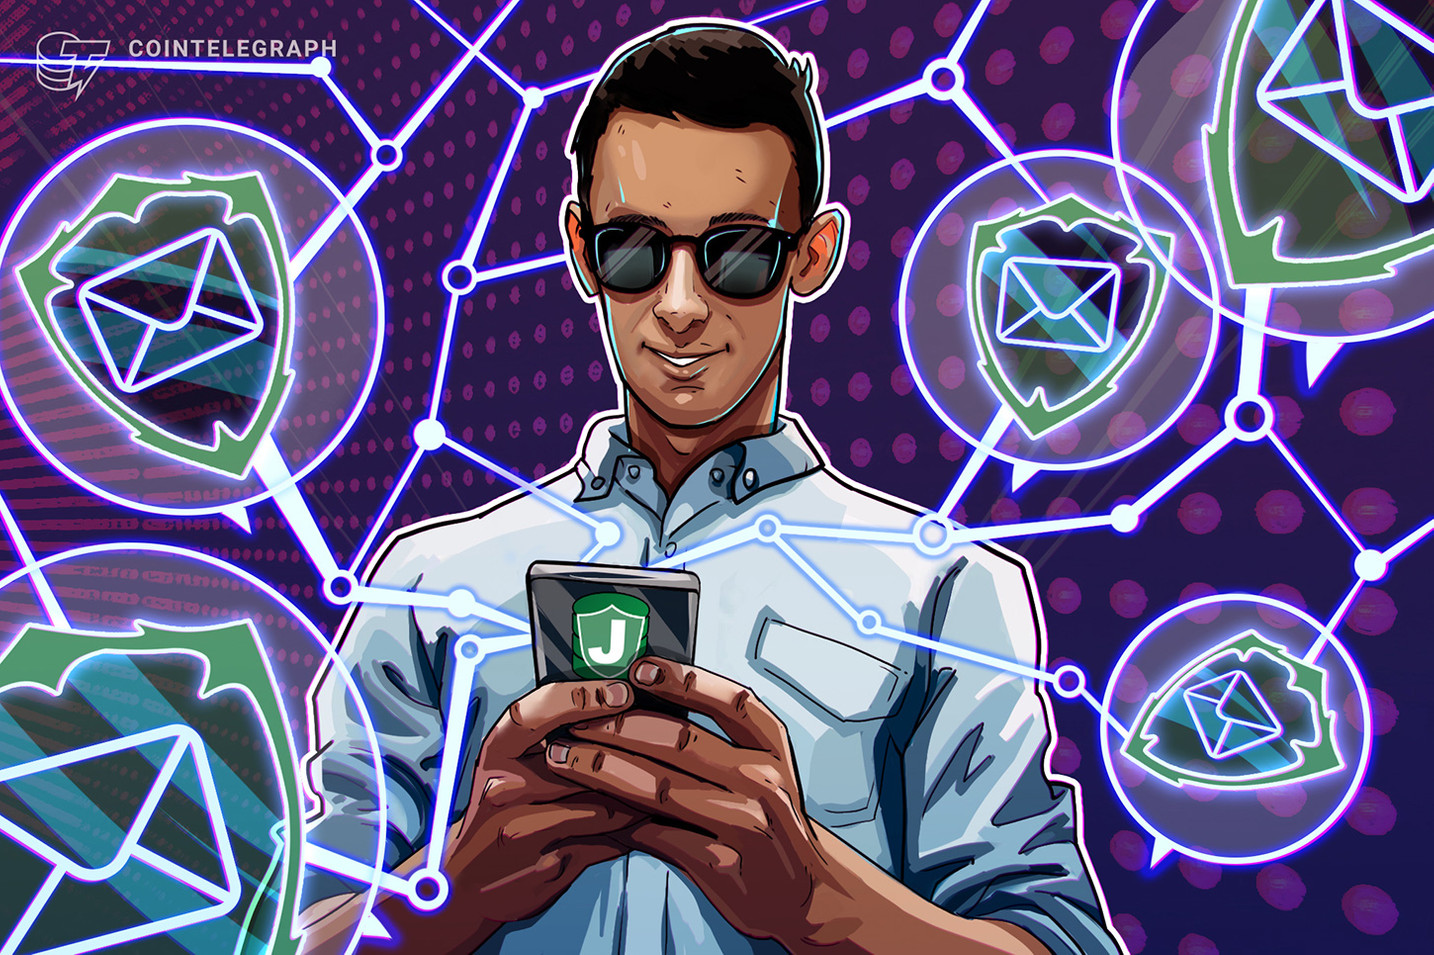 After launching DApp to rival WhatsApp, blockchain wants to take on Instagram